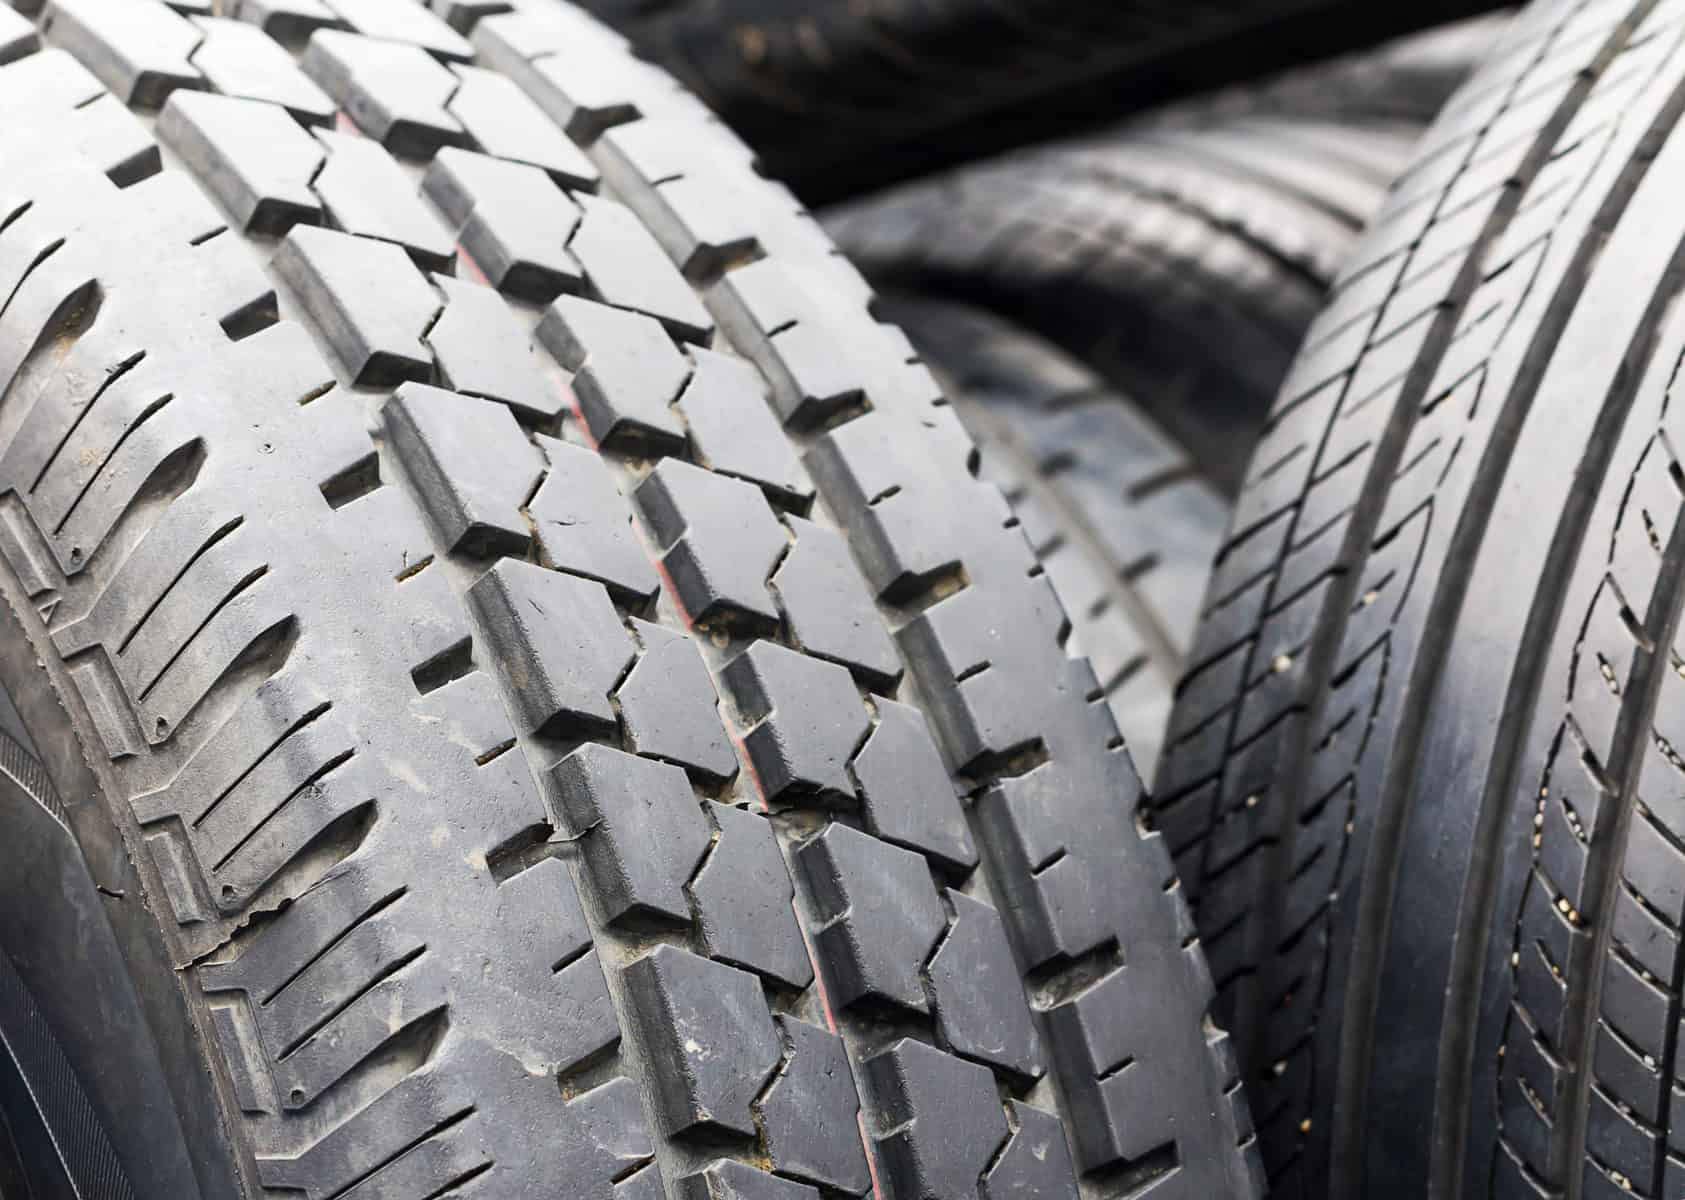 Close up old tires in the tire repair shop yard